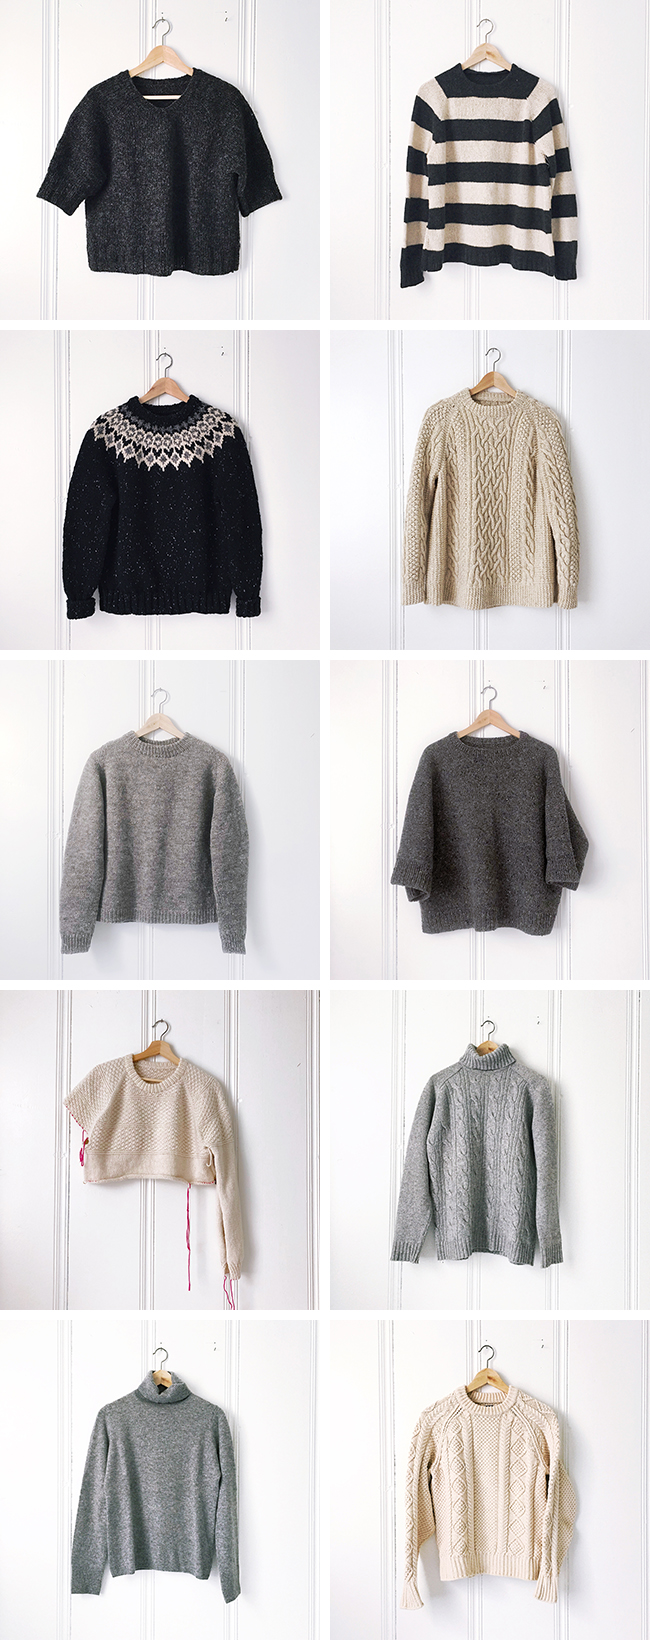 Sweater inventory, part 3: The pullovers